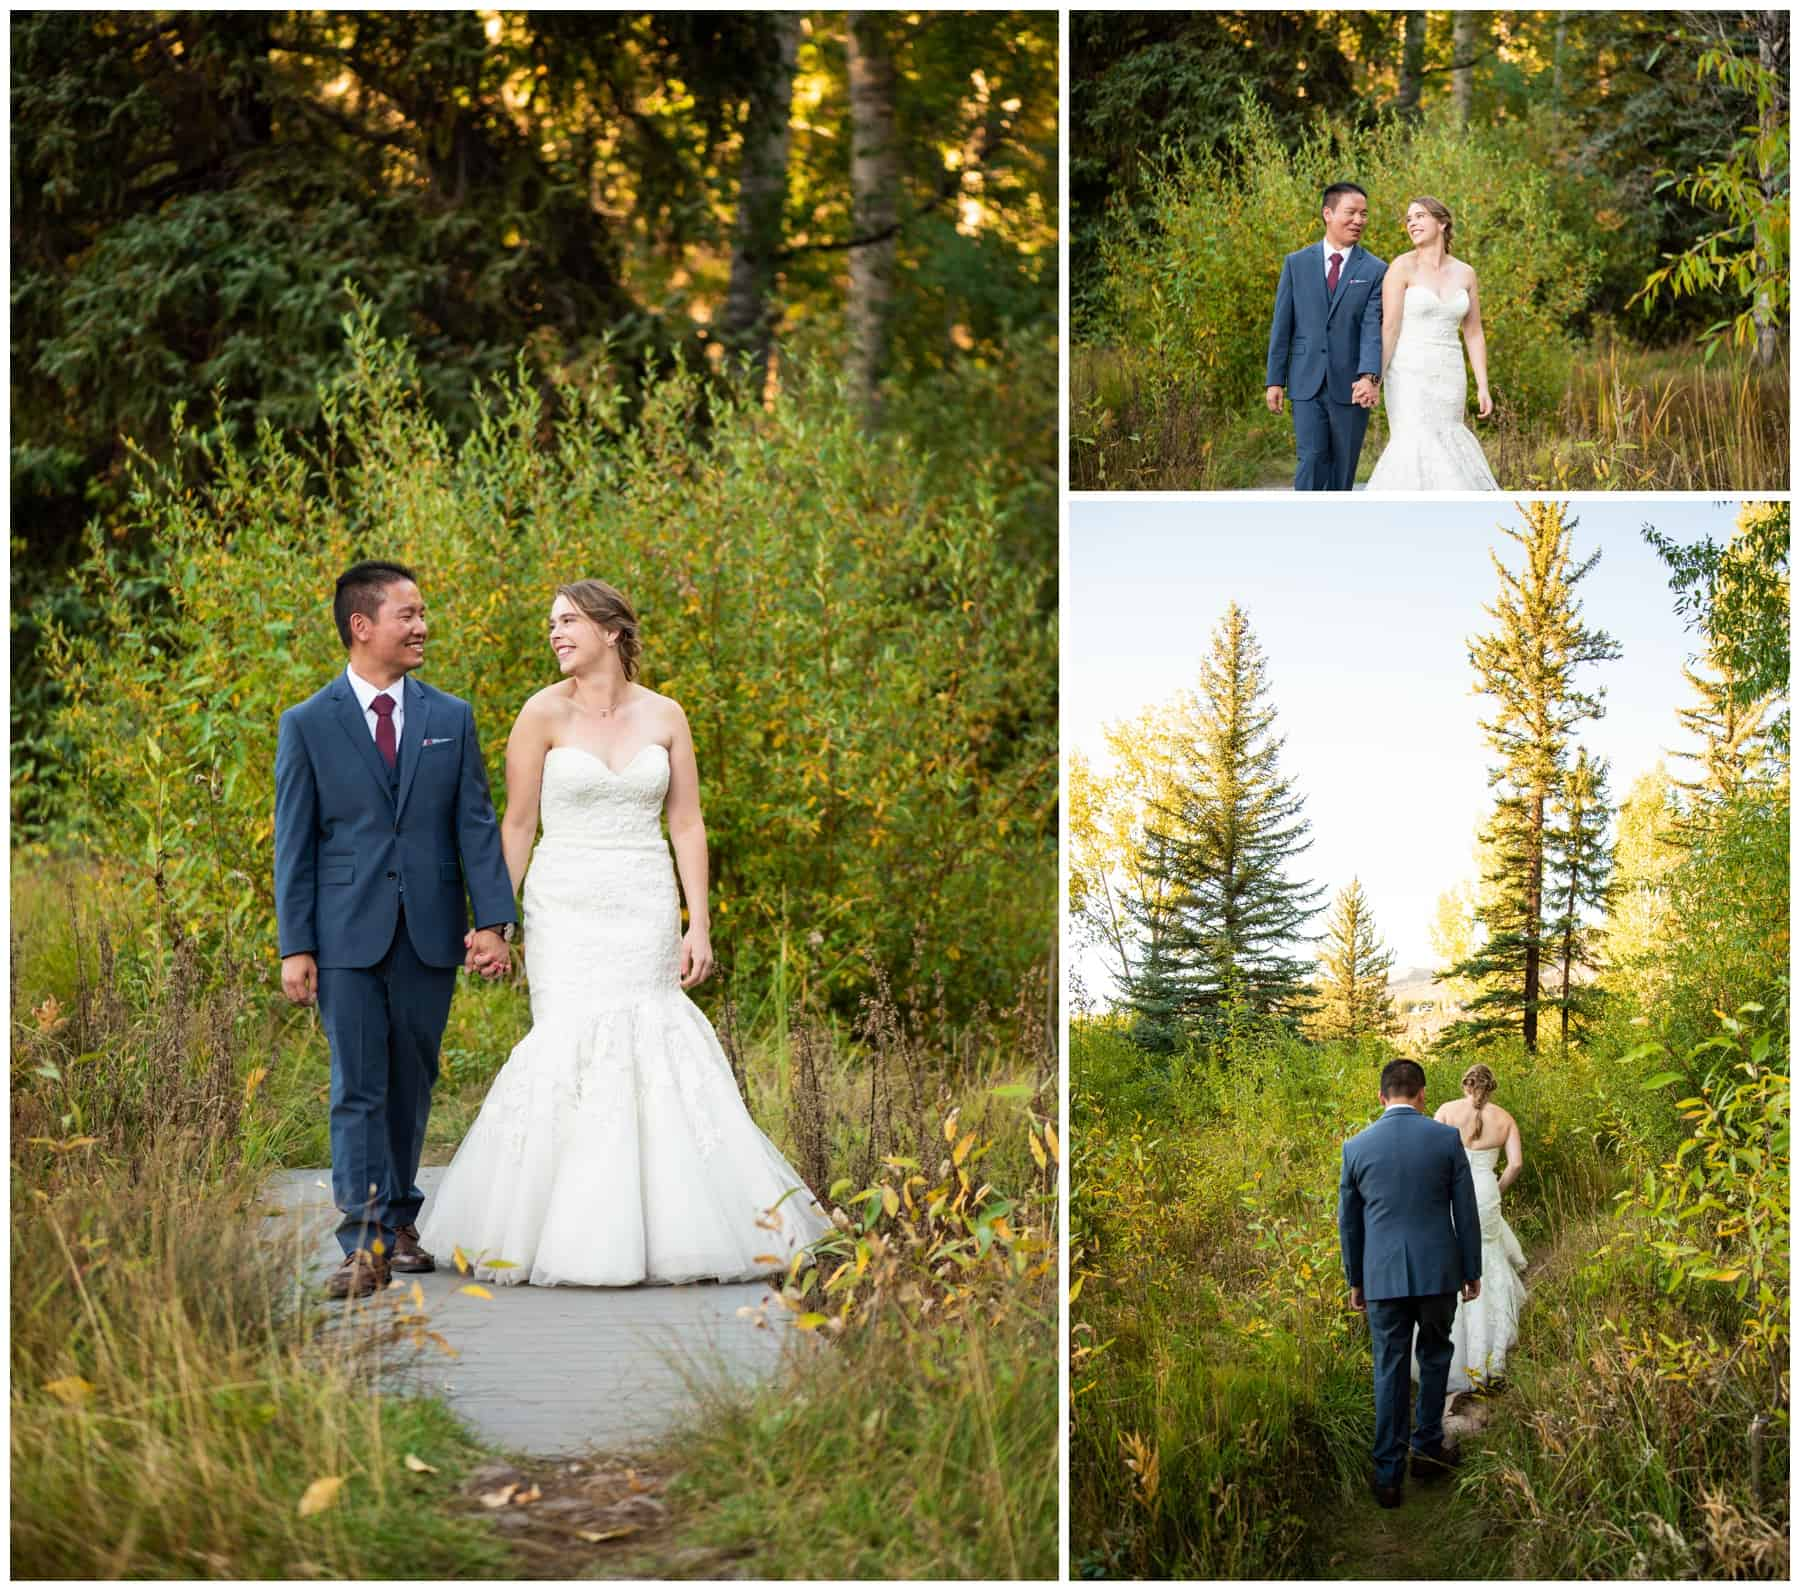 Aspen center environmental studies wedding